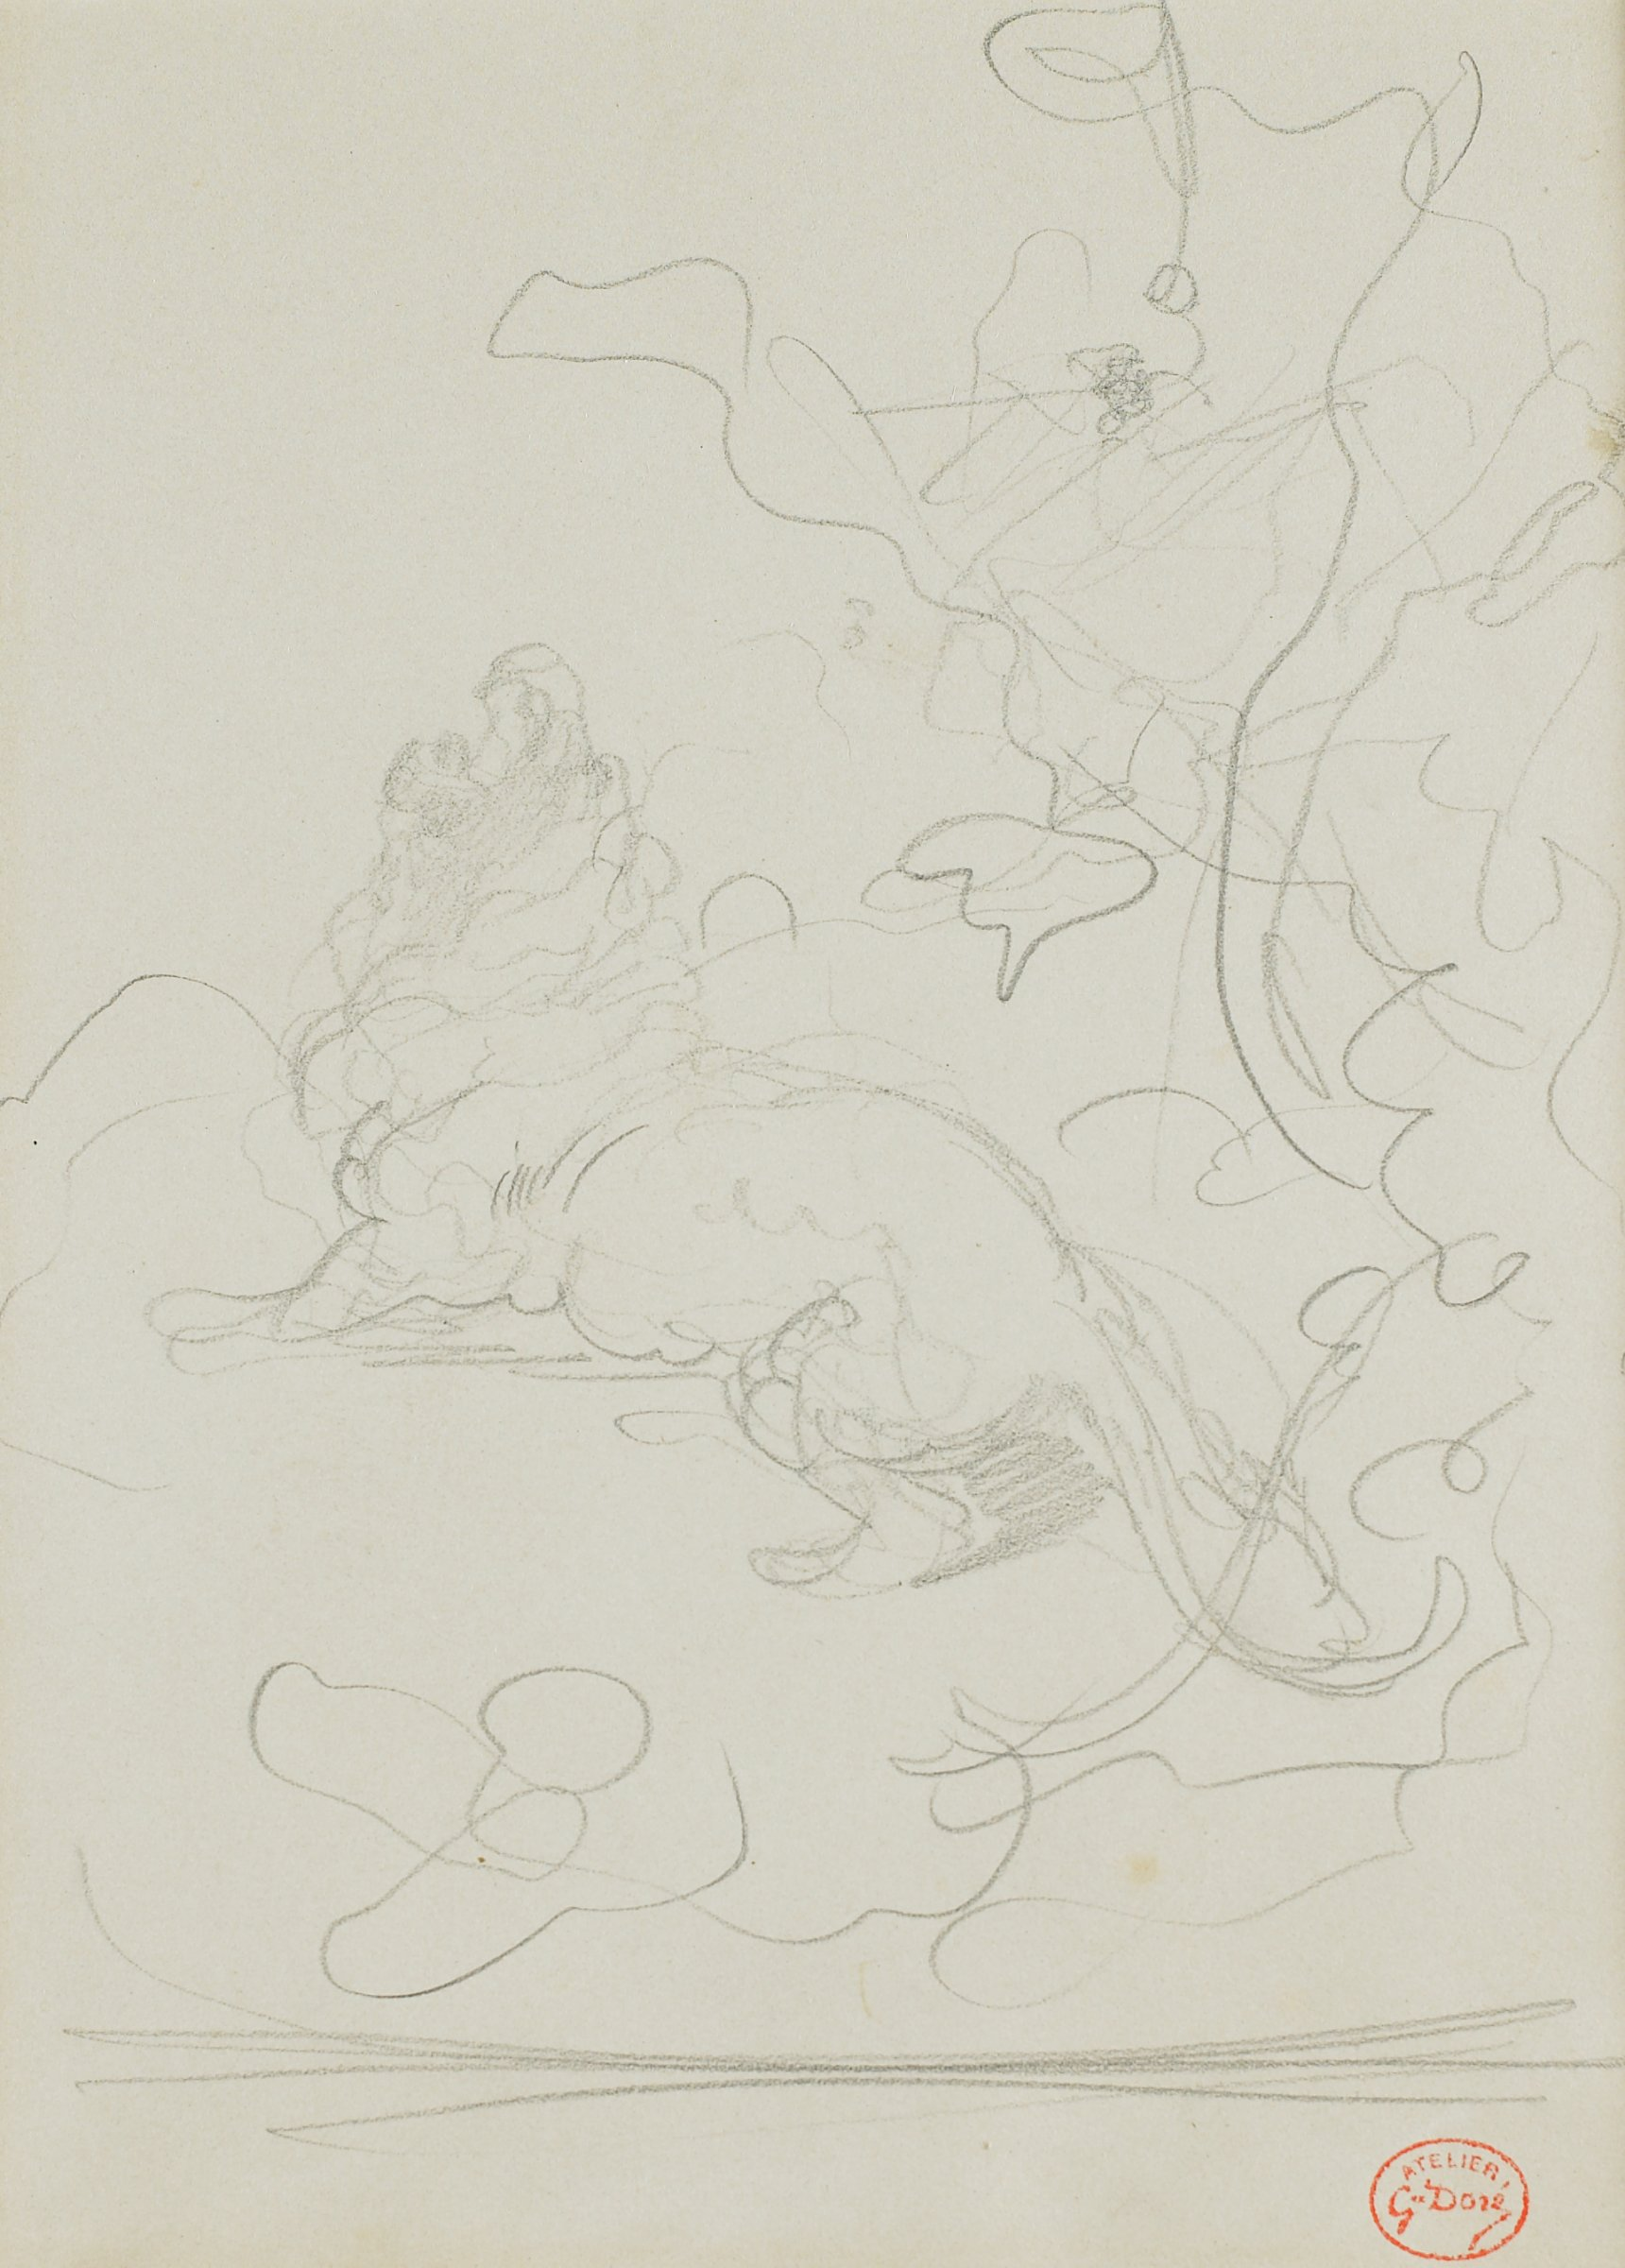 A lion in profile roars with his head tilted upwards. Swirling marks make up the landscape.